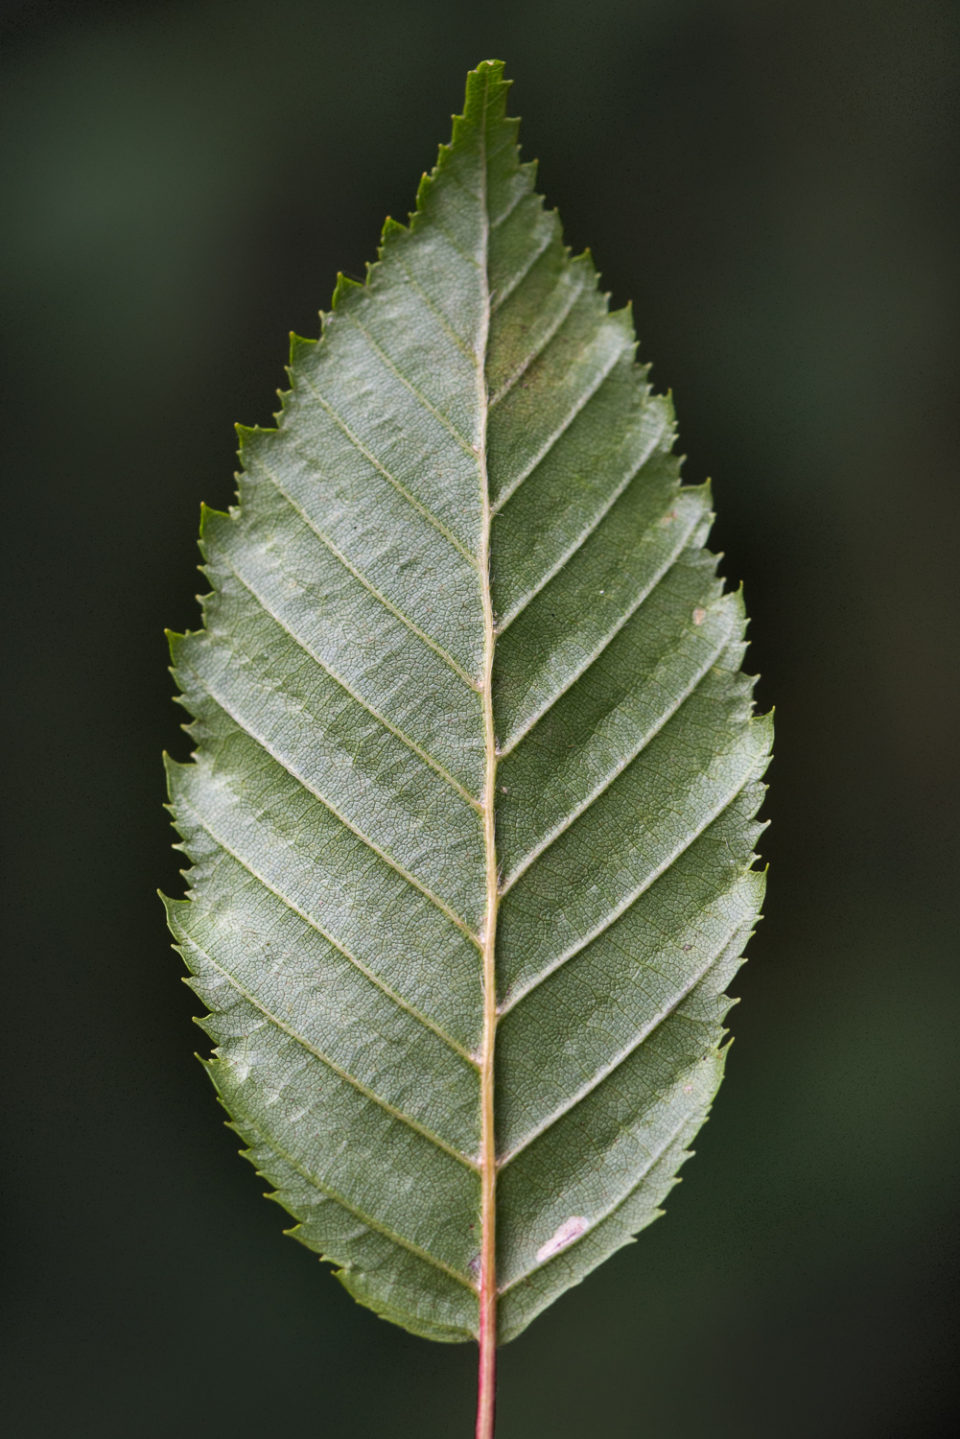 The lines and curves of a leaf